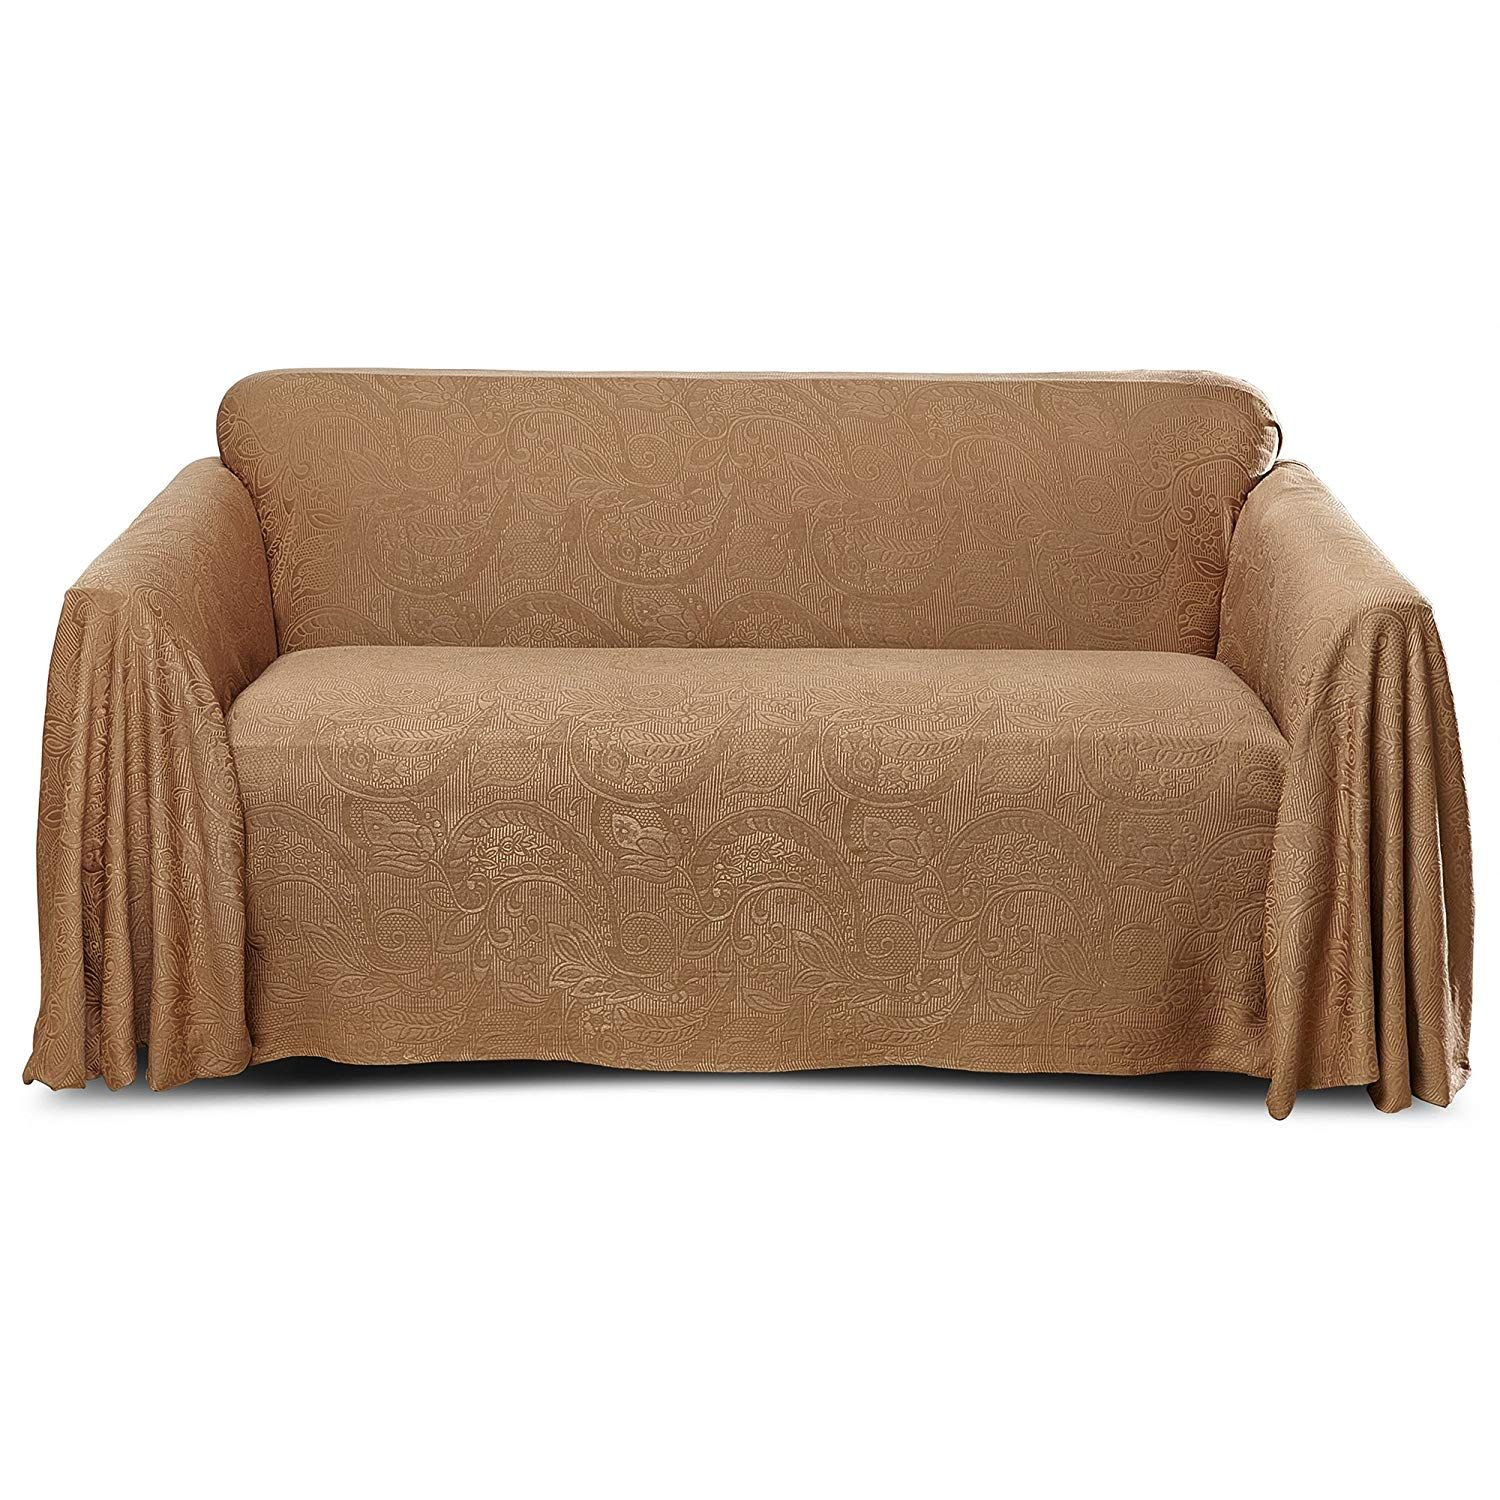 Top 13 Best Sofa Covers In 2020 Reviews Best Sofa Covers